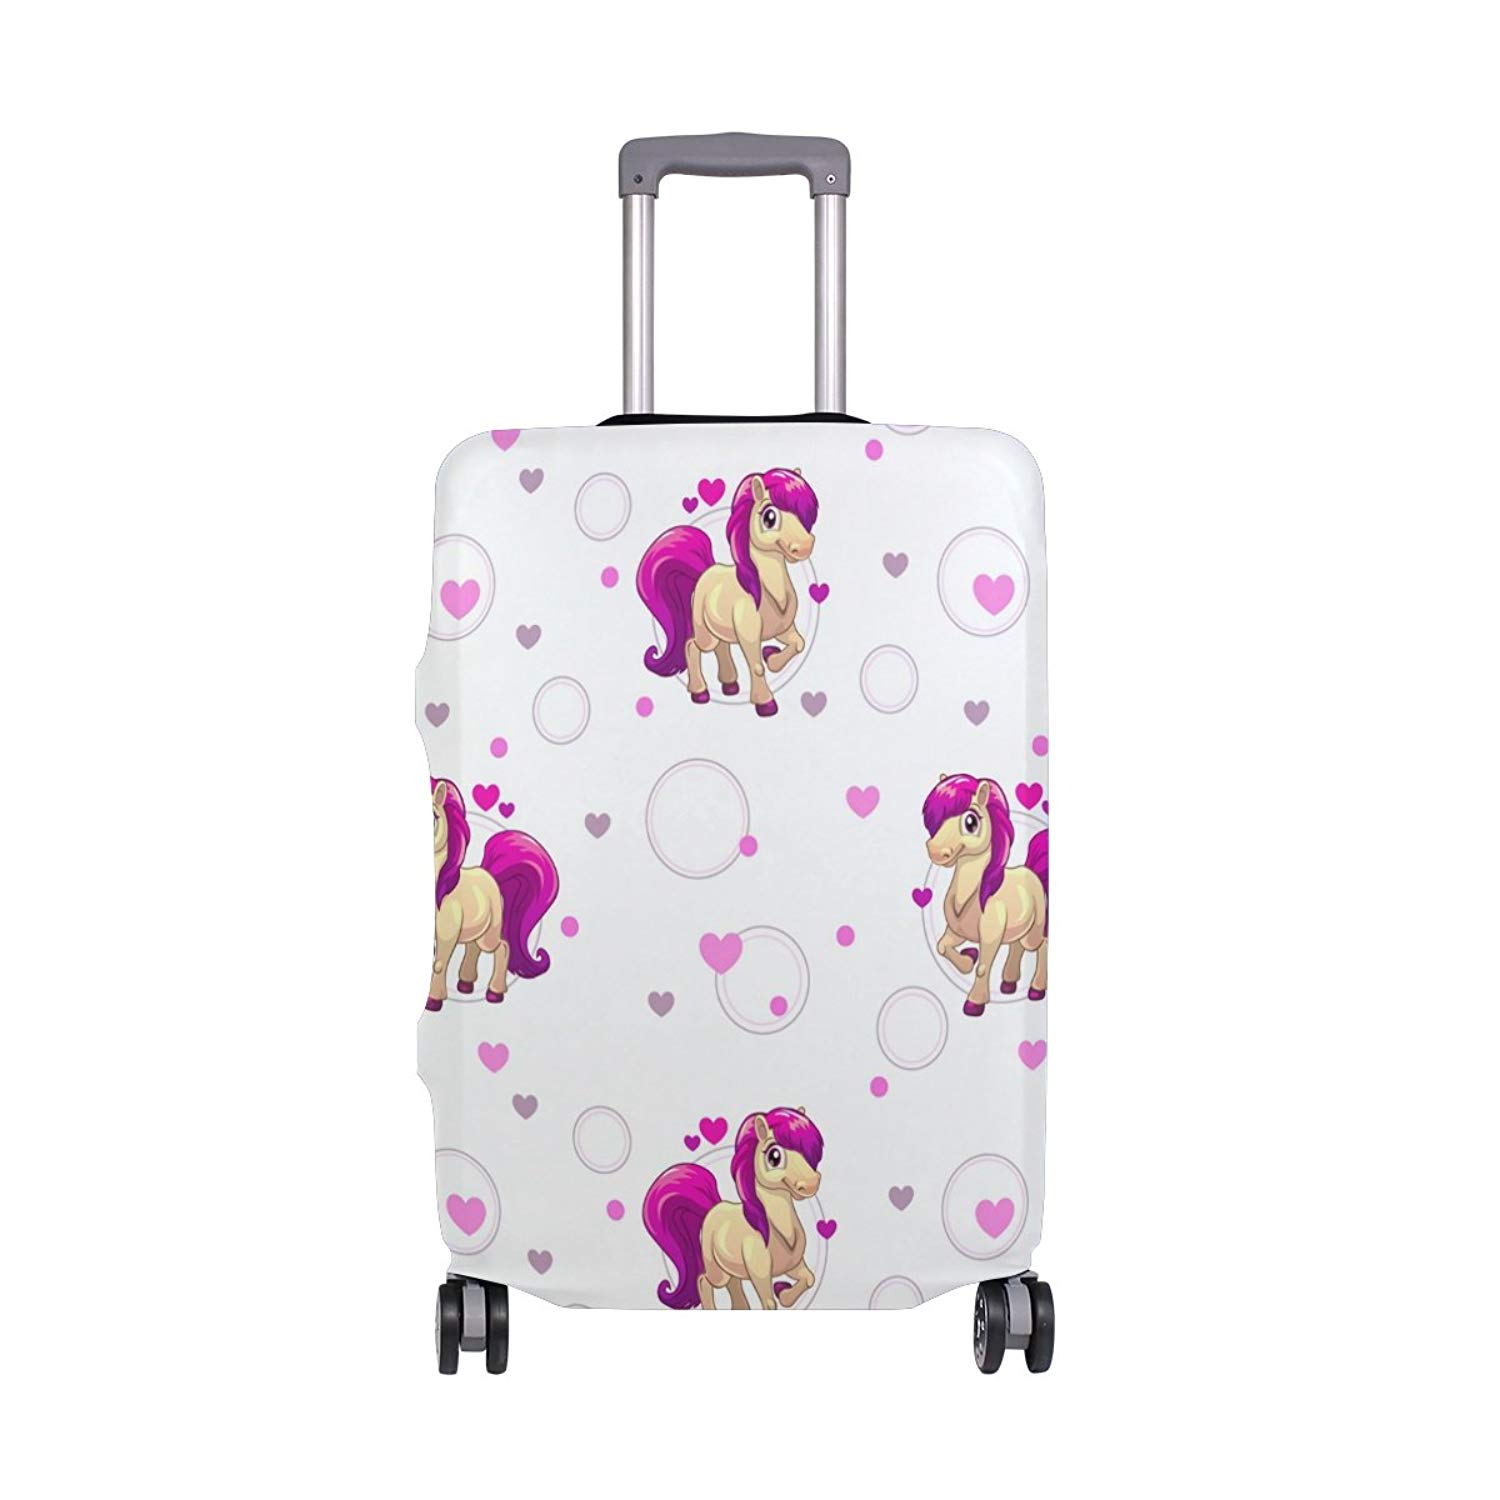 GIOVANIOR Bear Luggage Cover Suitcase Protector Carry On Covers